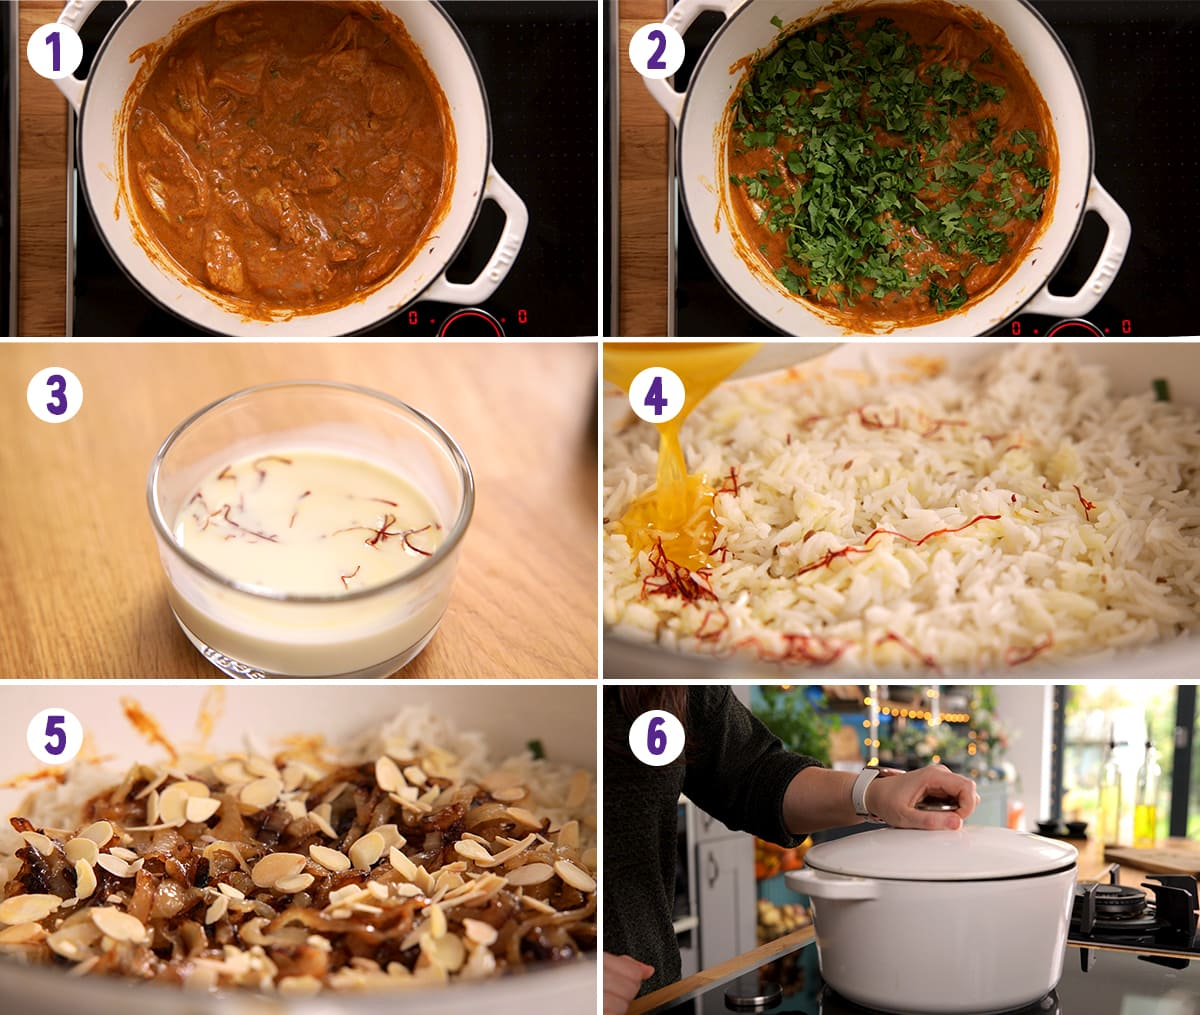 6 image collage showing how to make chicken biryani